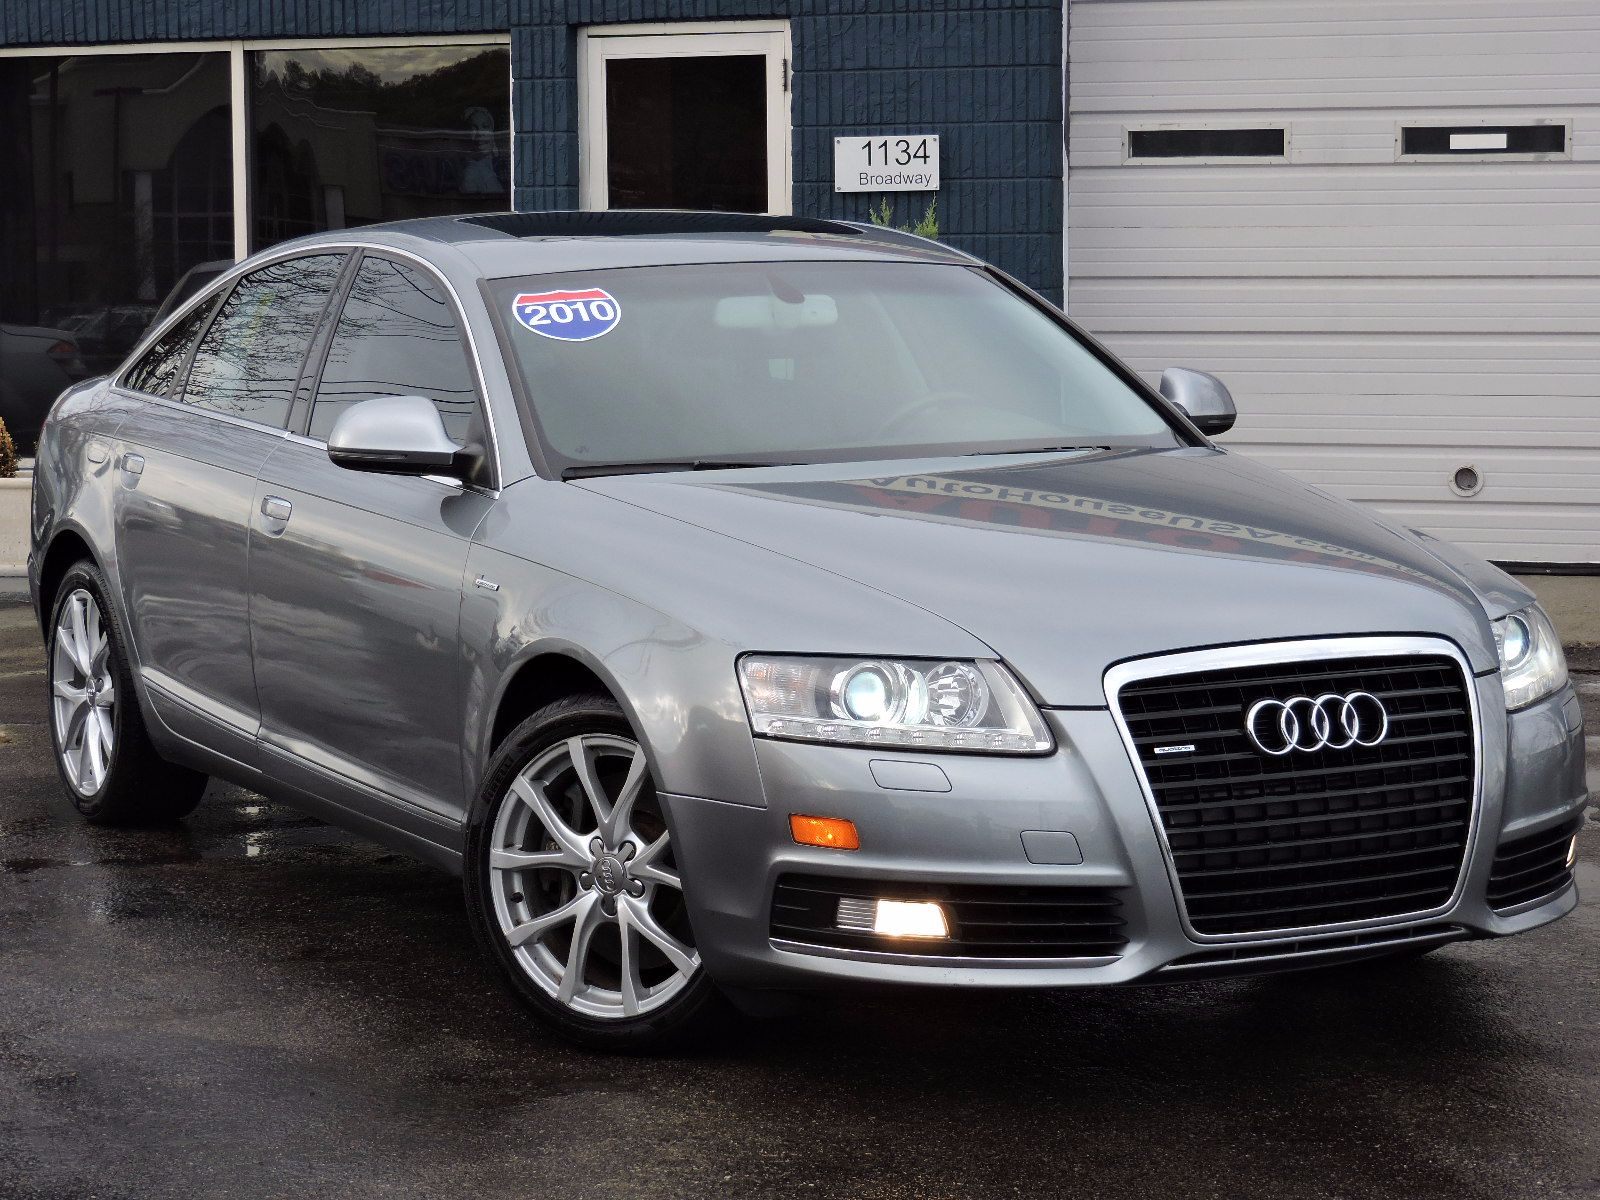 used 2010 audi a6 3 0t premium plus at saugus auto mall. Black Bedroom Furniture Sets. Home Design Ideas